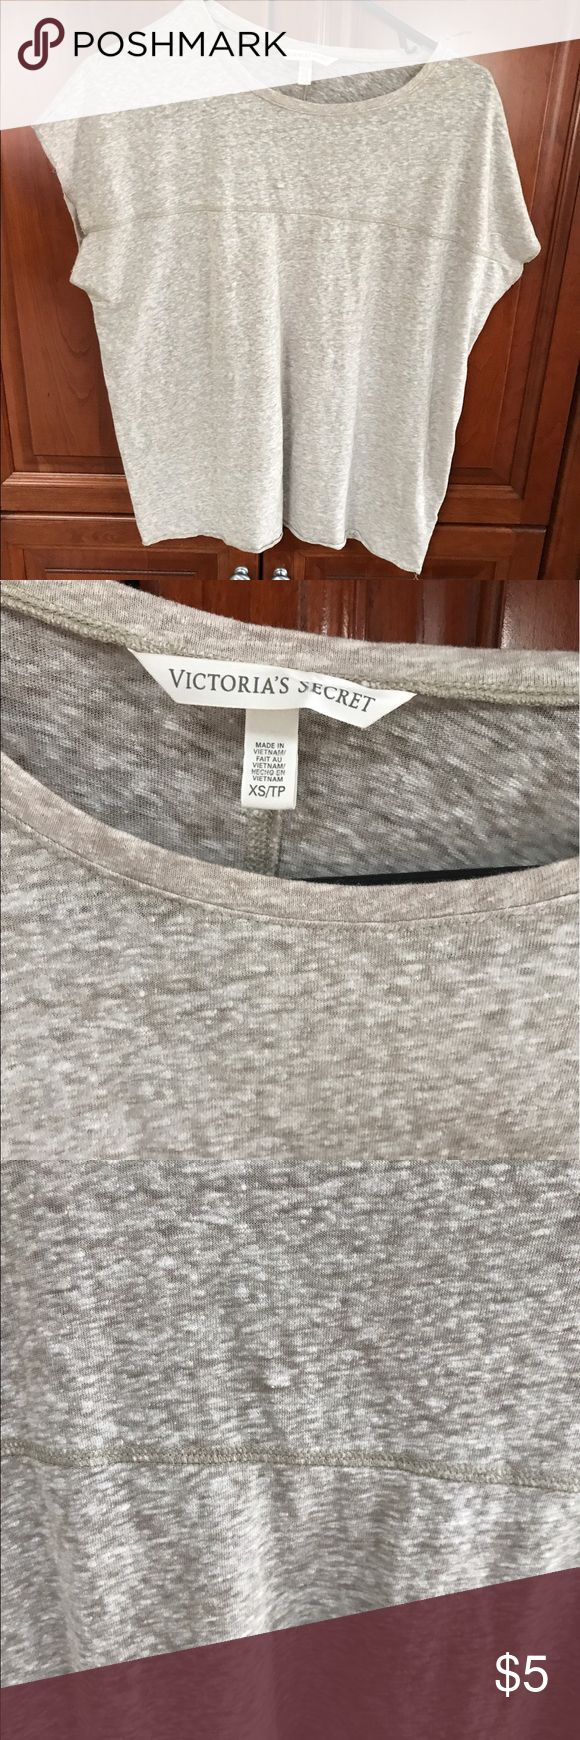 Victoria's Secret Sleeveless Beige Tee. SZ XS Victoria's Secret Sleeveless Beige Tee Size XS Comfy and stylish . Excellent Condition and Quality! Victoria's Secret Tops